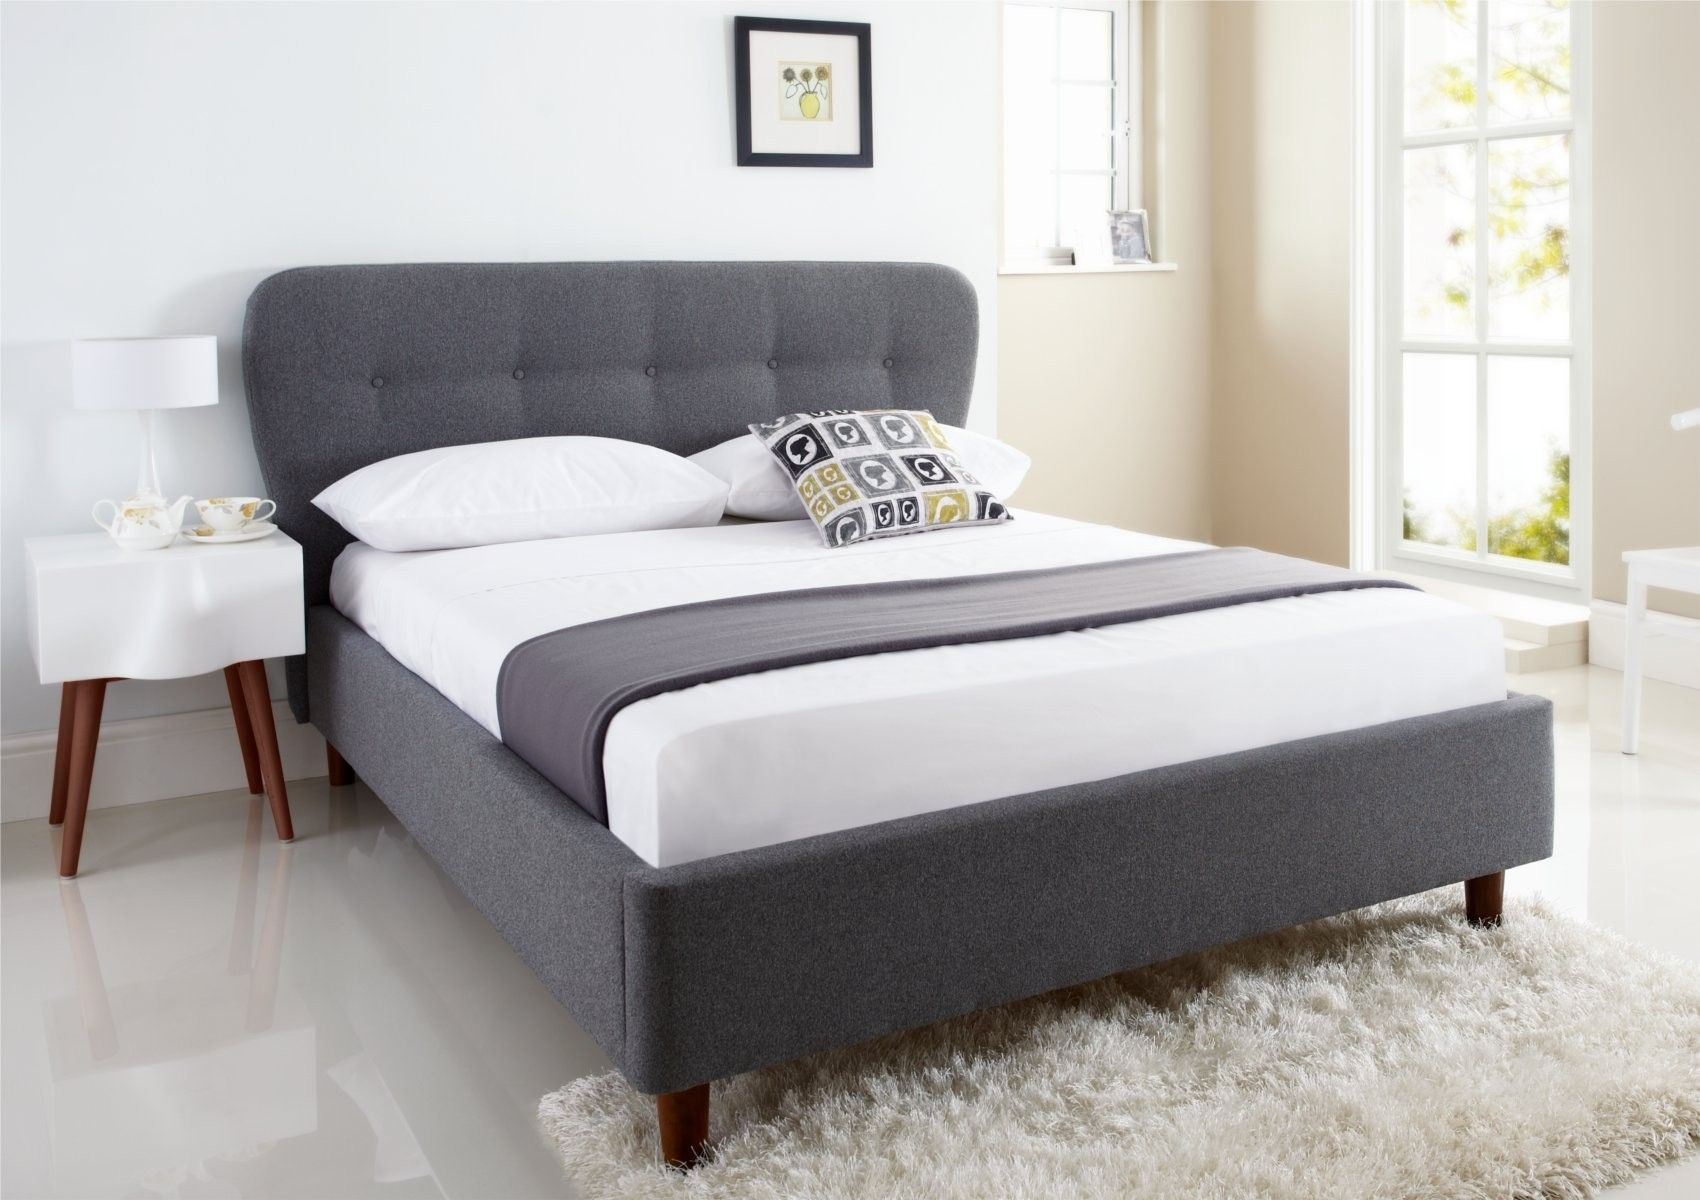 How Do I Get Park Place Departure Roll-Up Pillow Top Queen Mattress Only - AC-DEPART-RUPT-5/0M